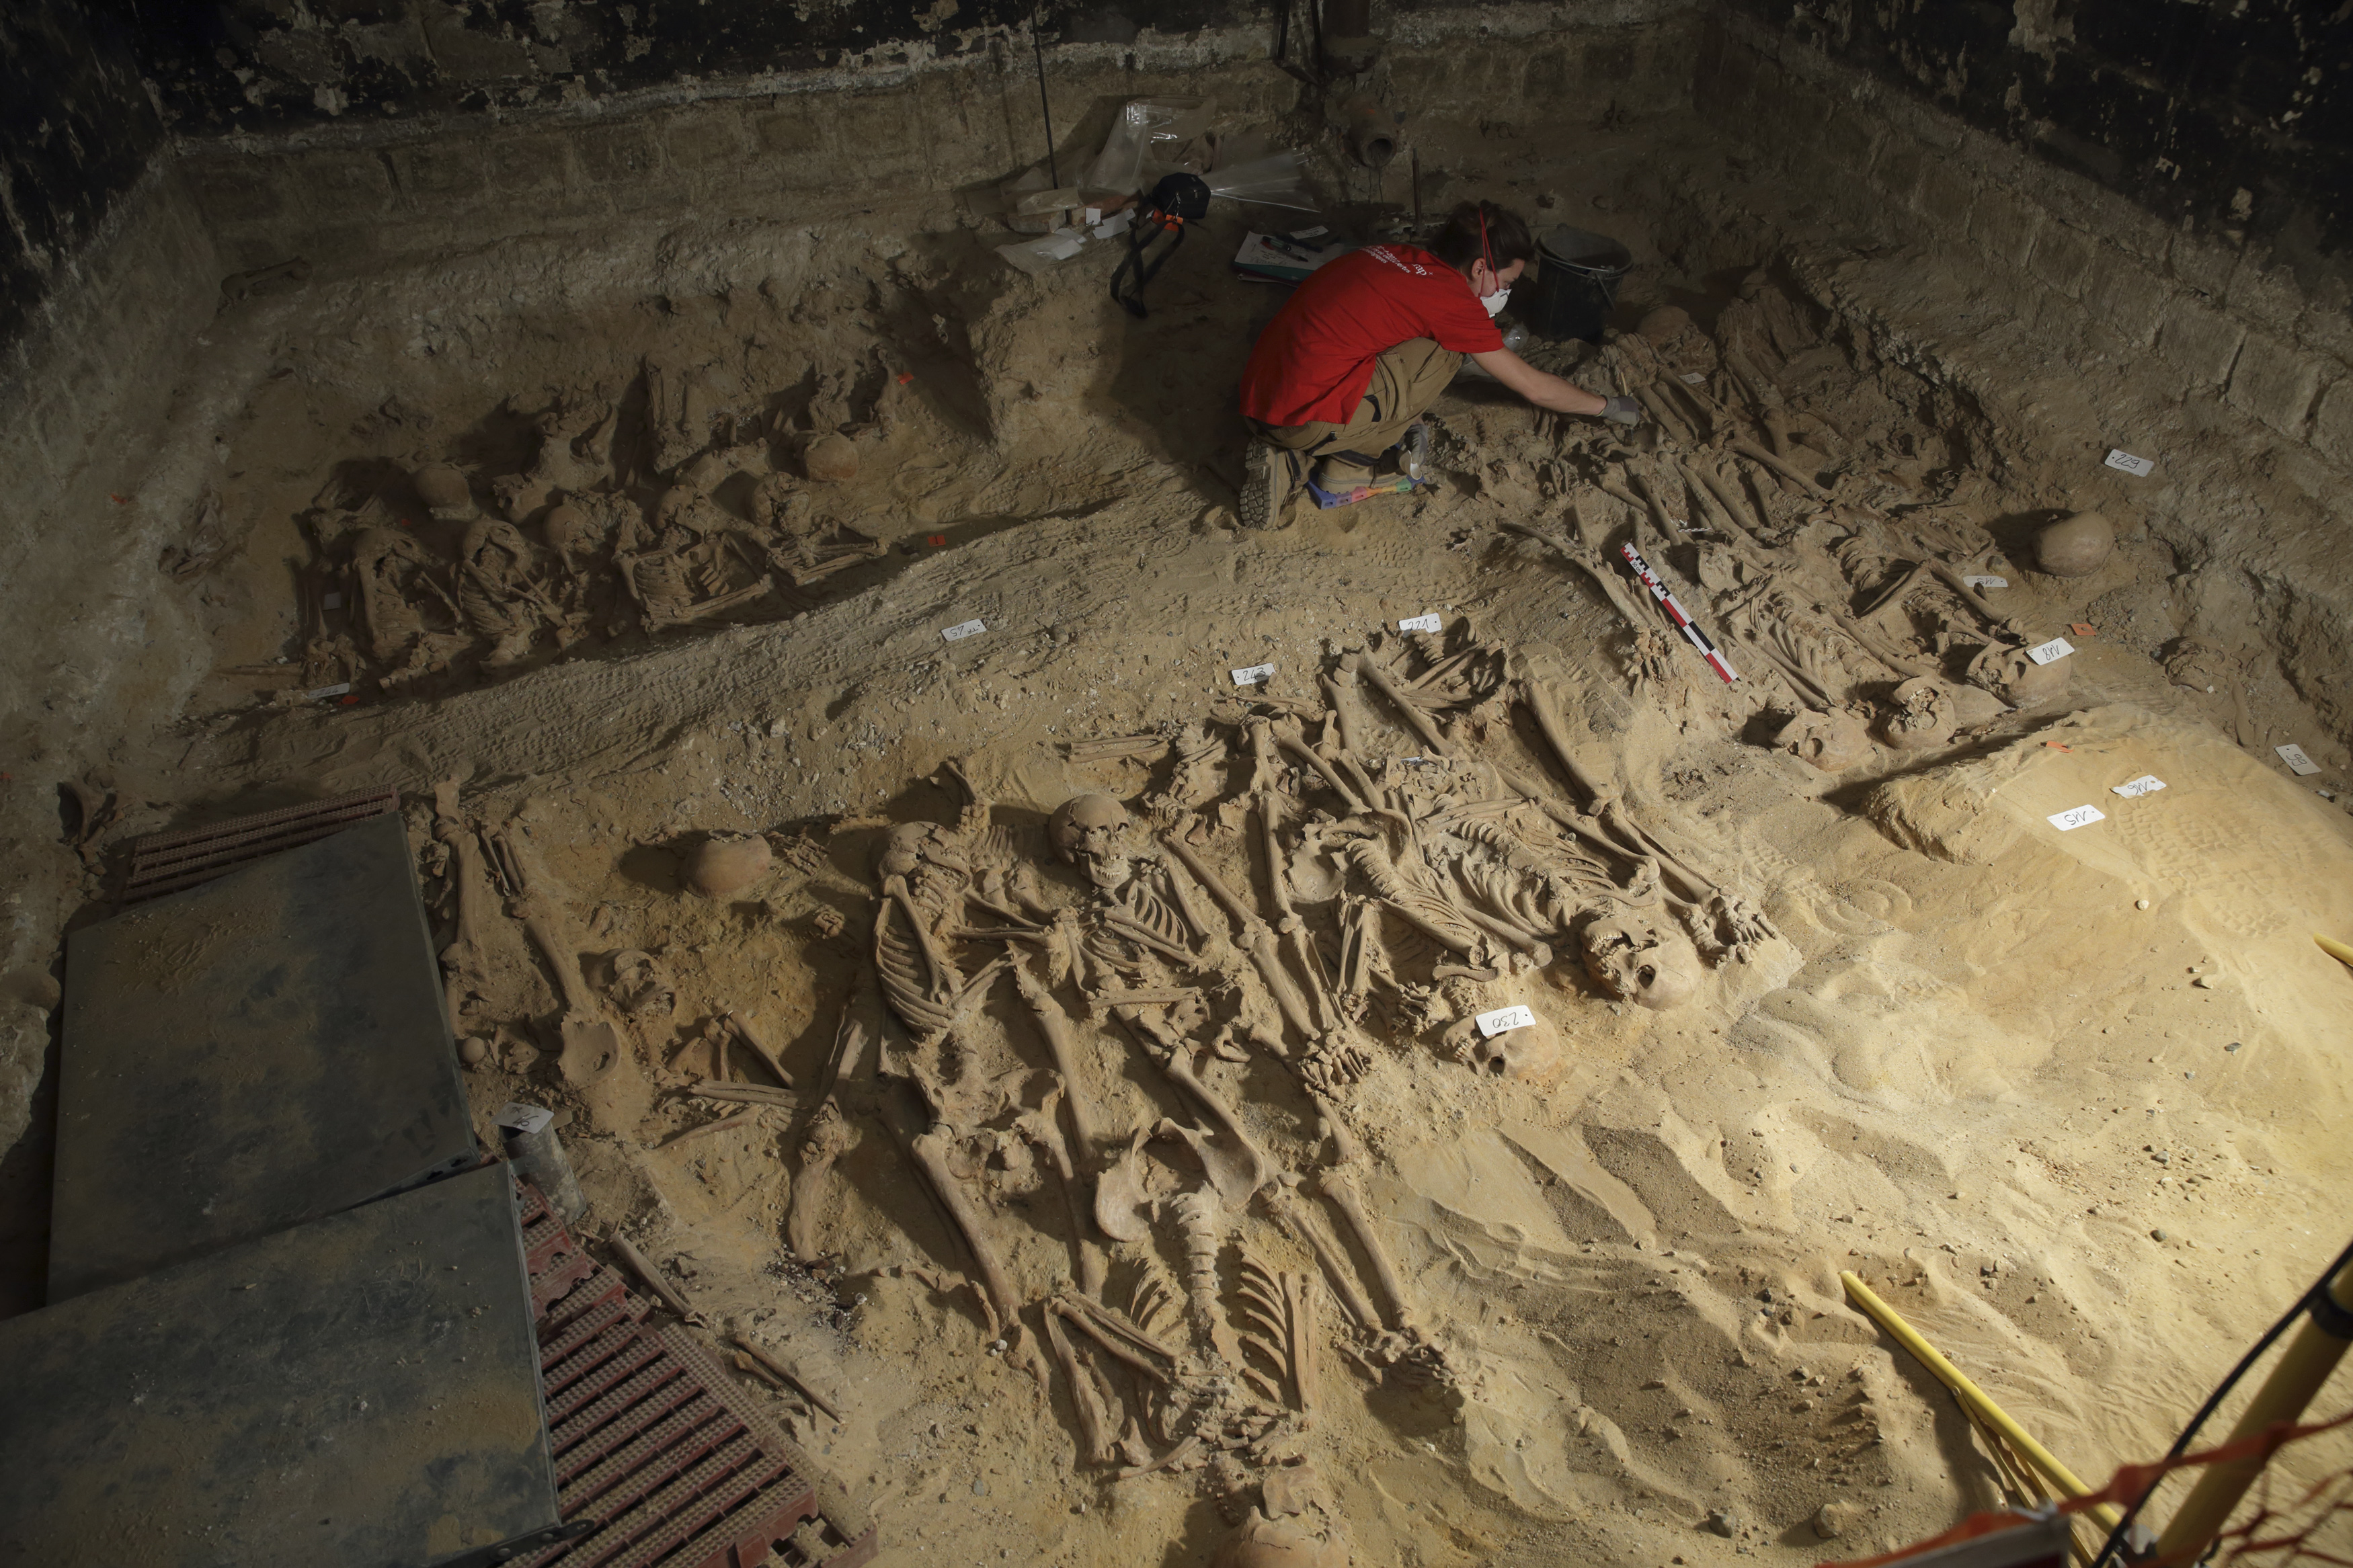 "An archaeologist works March 10, 2015 at the site where eight mass graves, with more than 200 skeletons, were found under the Monoprix Reaumur Sebastopol store in Paris. The discovery, made during renovation work in the cellar of the branch of Monoprix, has revealed what experts believe are victims of a sudden illness resembling an outbreak of Bubonic plague and could prove useful to historians studying burials in the Middle Ages. Eight communal graves have so far been discovered, seven small plots and one much larger one in which 150 skeletons have already been unearthed. The supermarket stands on the site of the cemetery of the Trinity hospital, founded in the 12th century and destroyed at the end of the 18th, and experts say the organisation of the graves points to a ""mass mortality crisis"". Picture taken March 10, 2015. Photo By Philippe Wojazer"